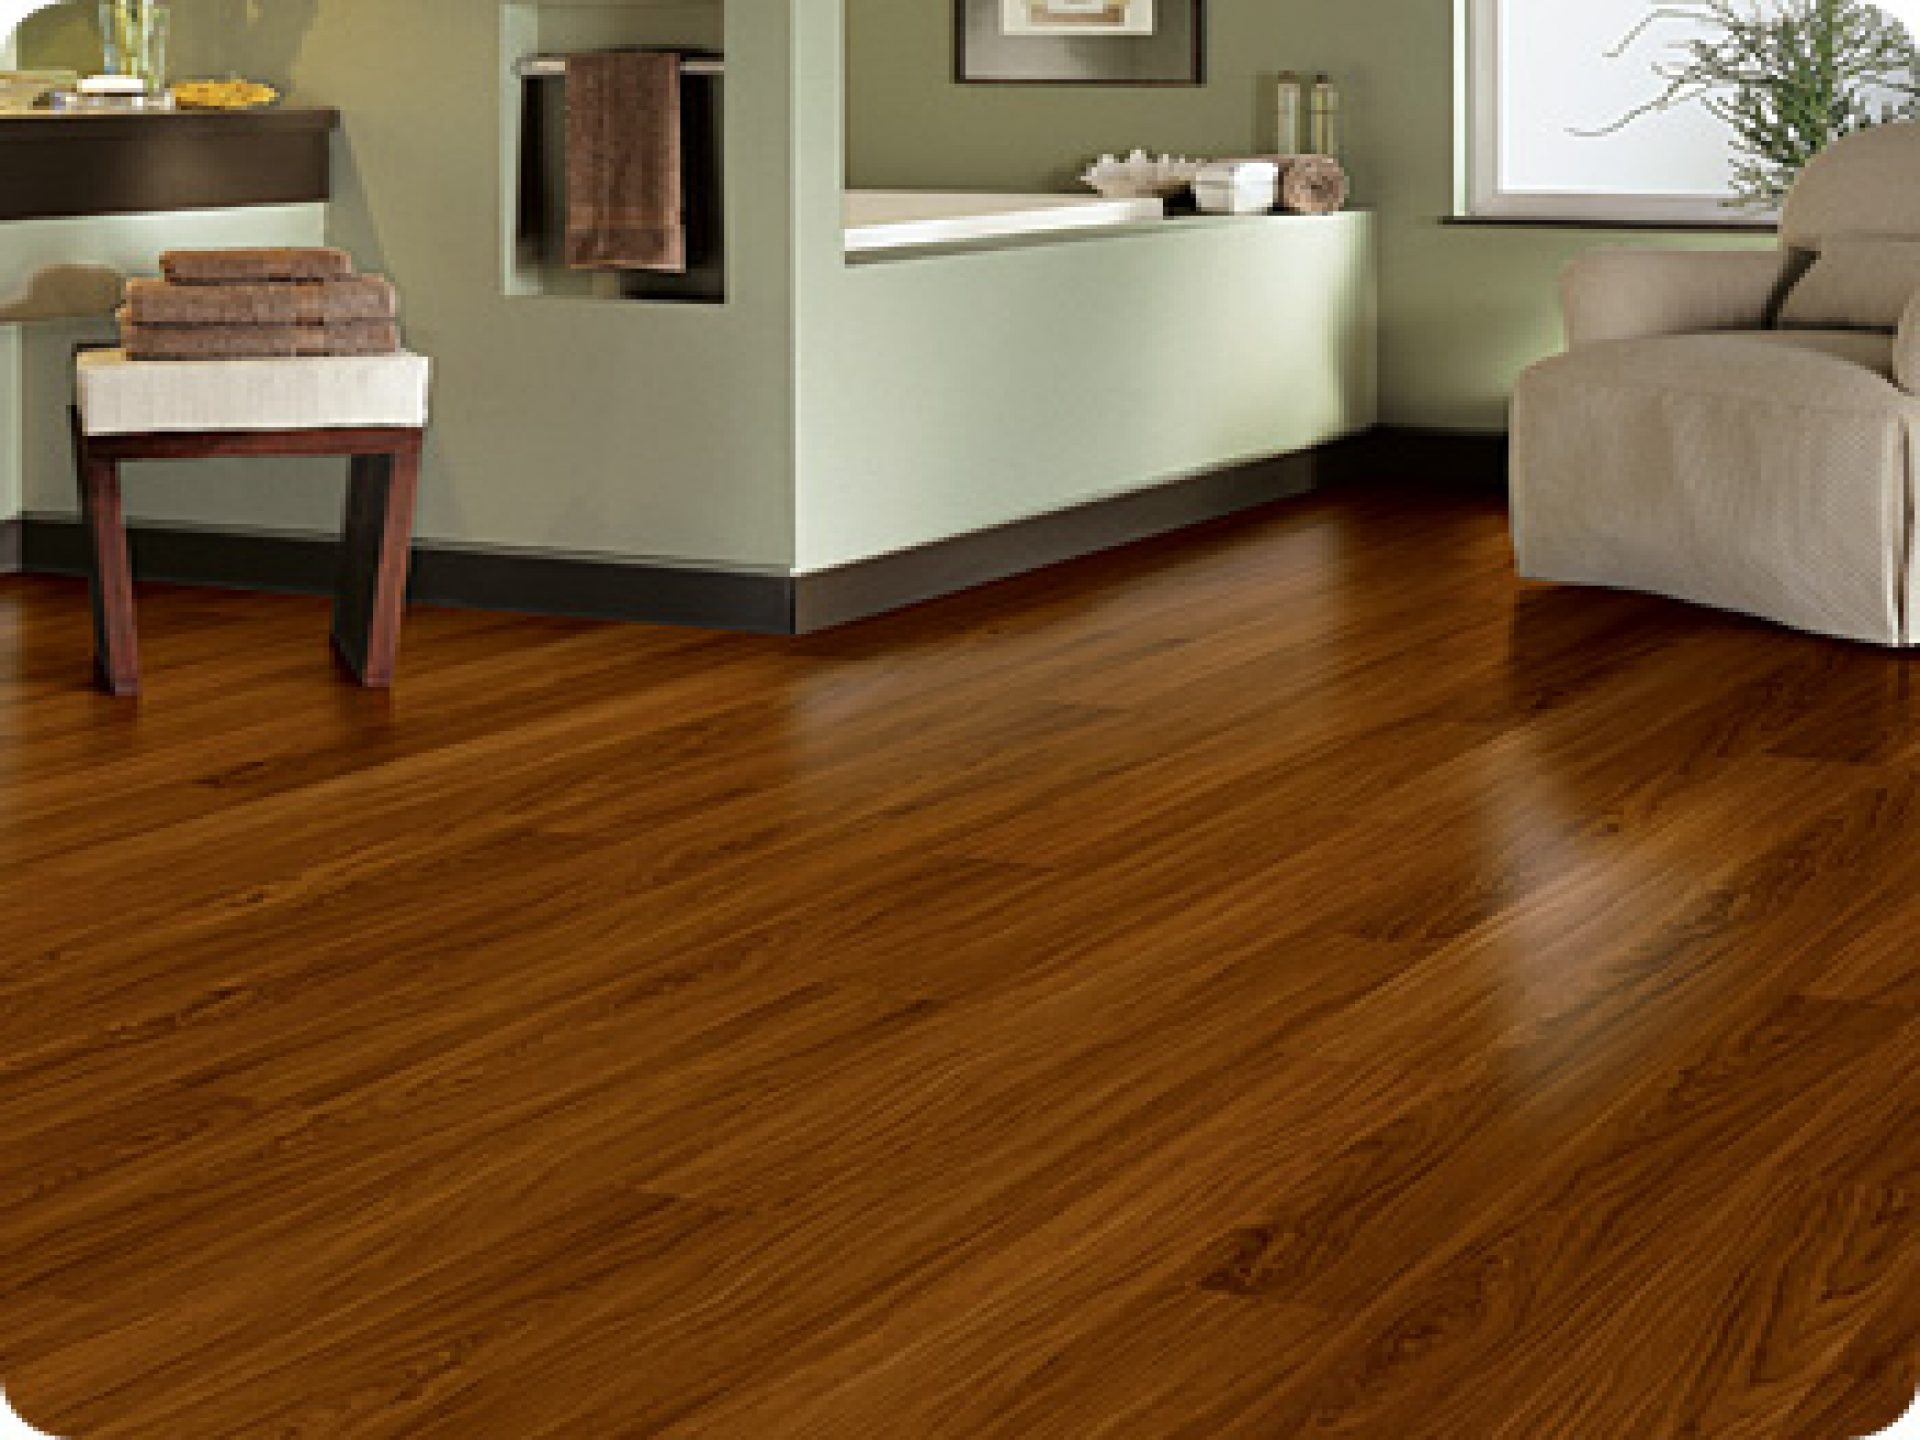 Pvc vinyl flooring price vinyl flooring abu dhabi for New home flooring